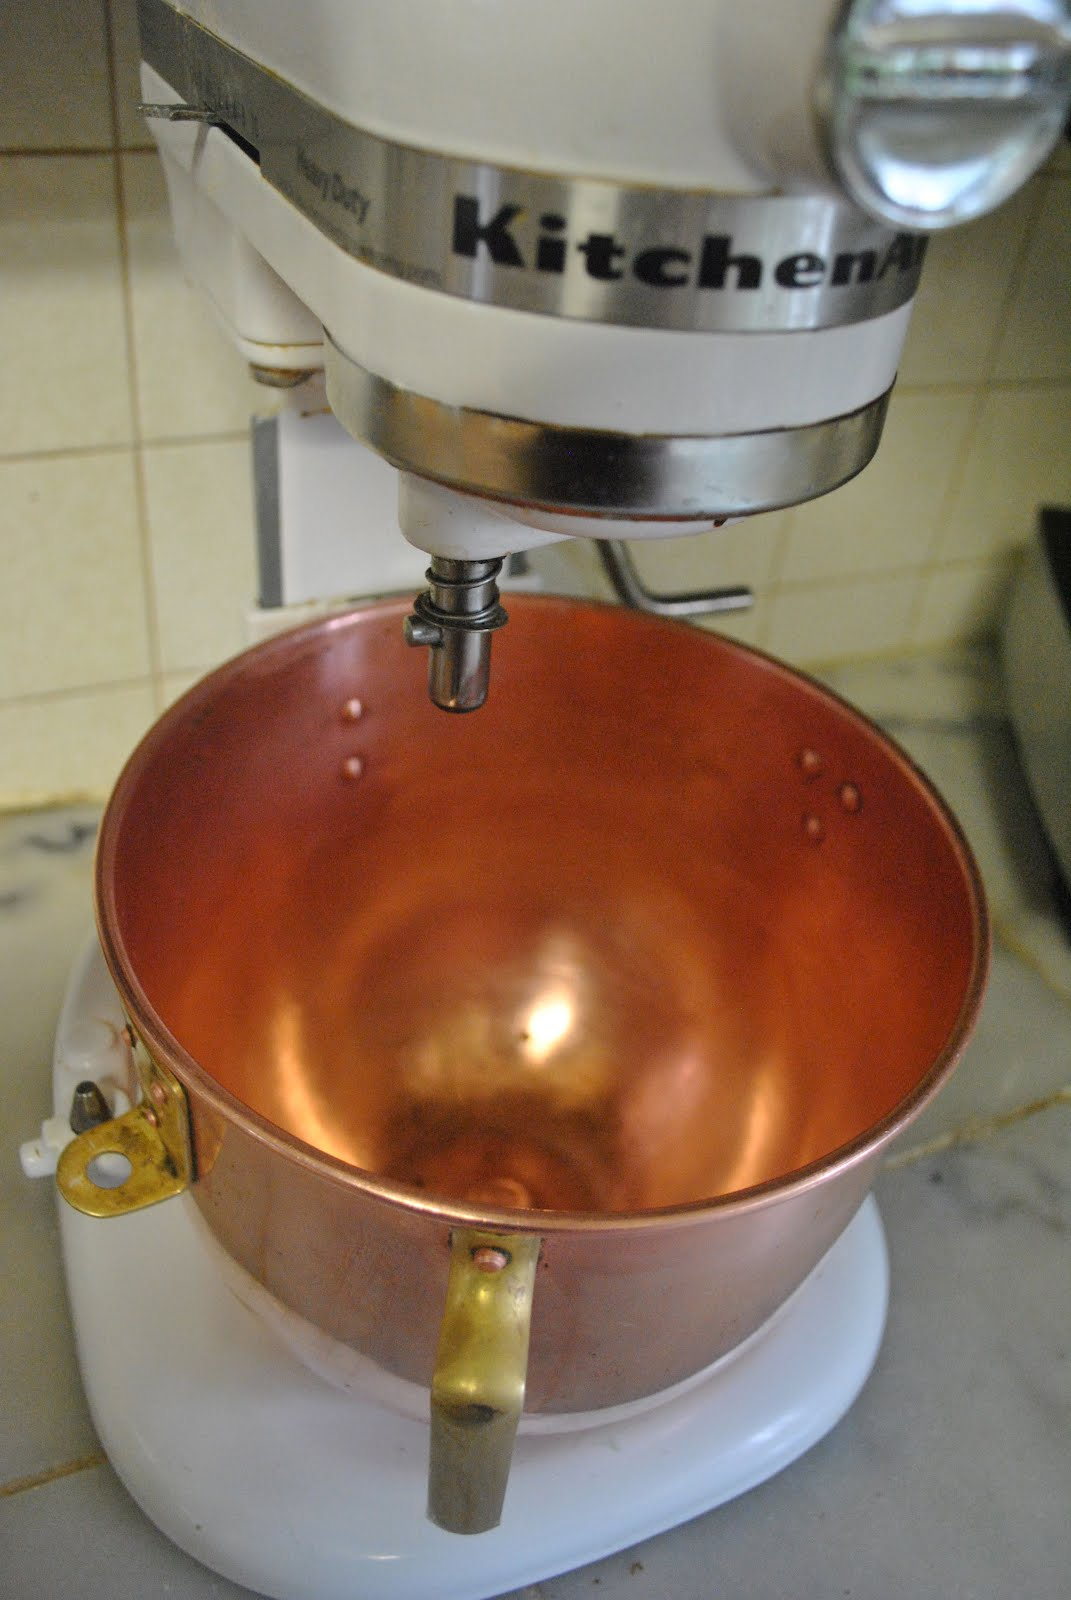 It S Copper Inside And Out Yes Does A Very Good Job With Egg Whites But The Bowl I Keep On Mixer Stand Use